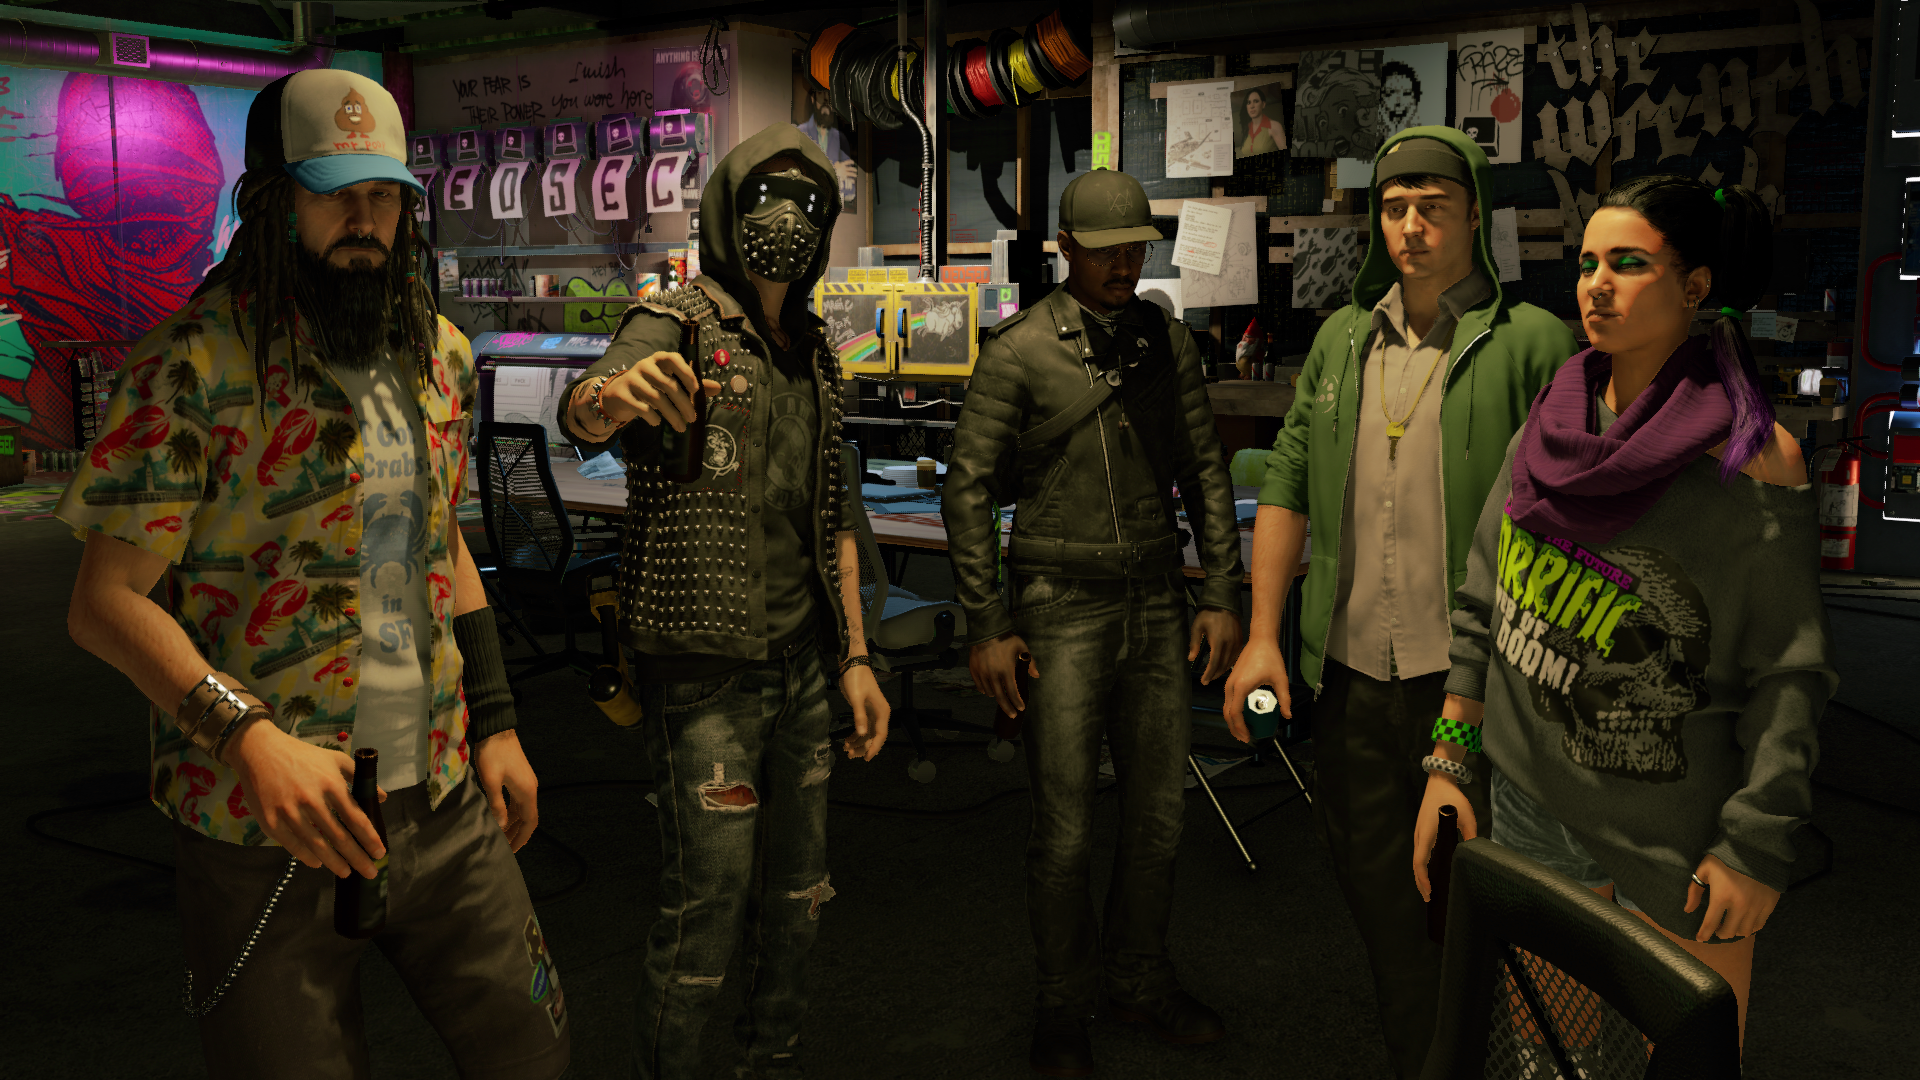 watch_dogs2_2016112520puak.png